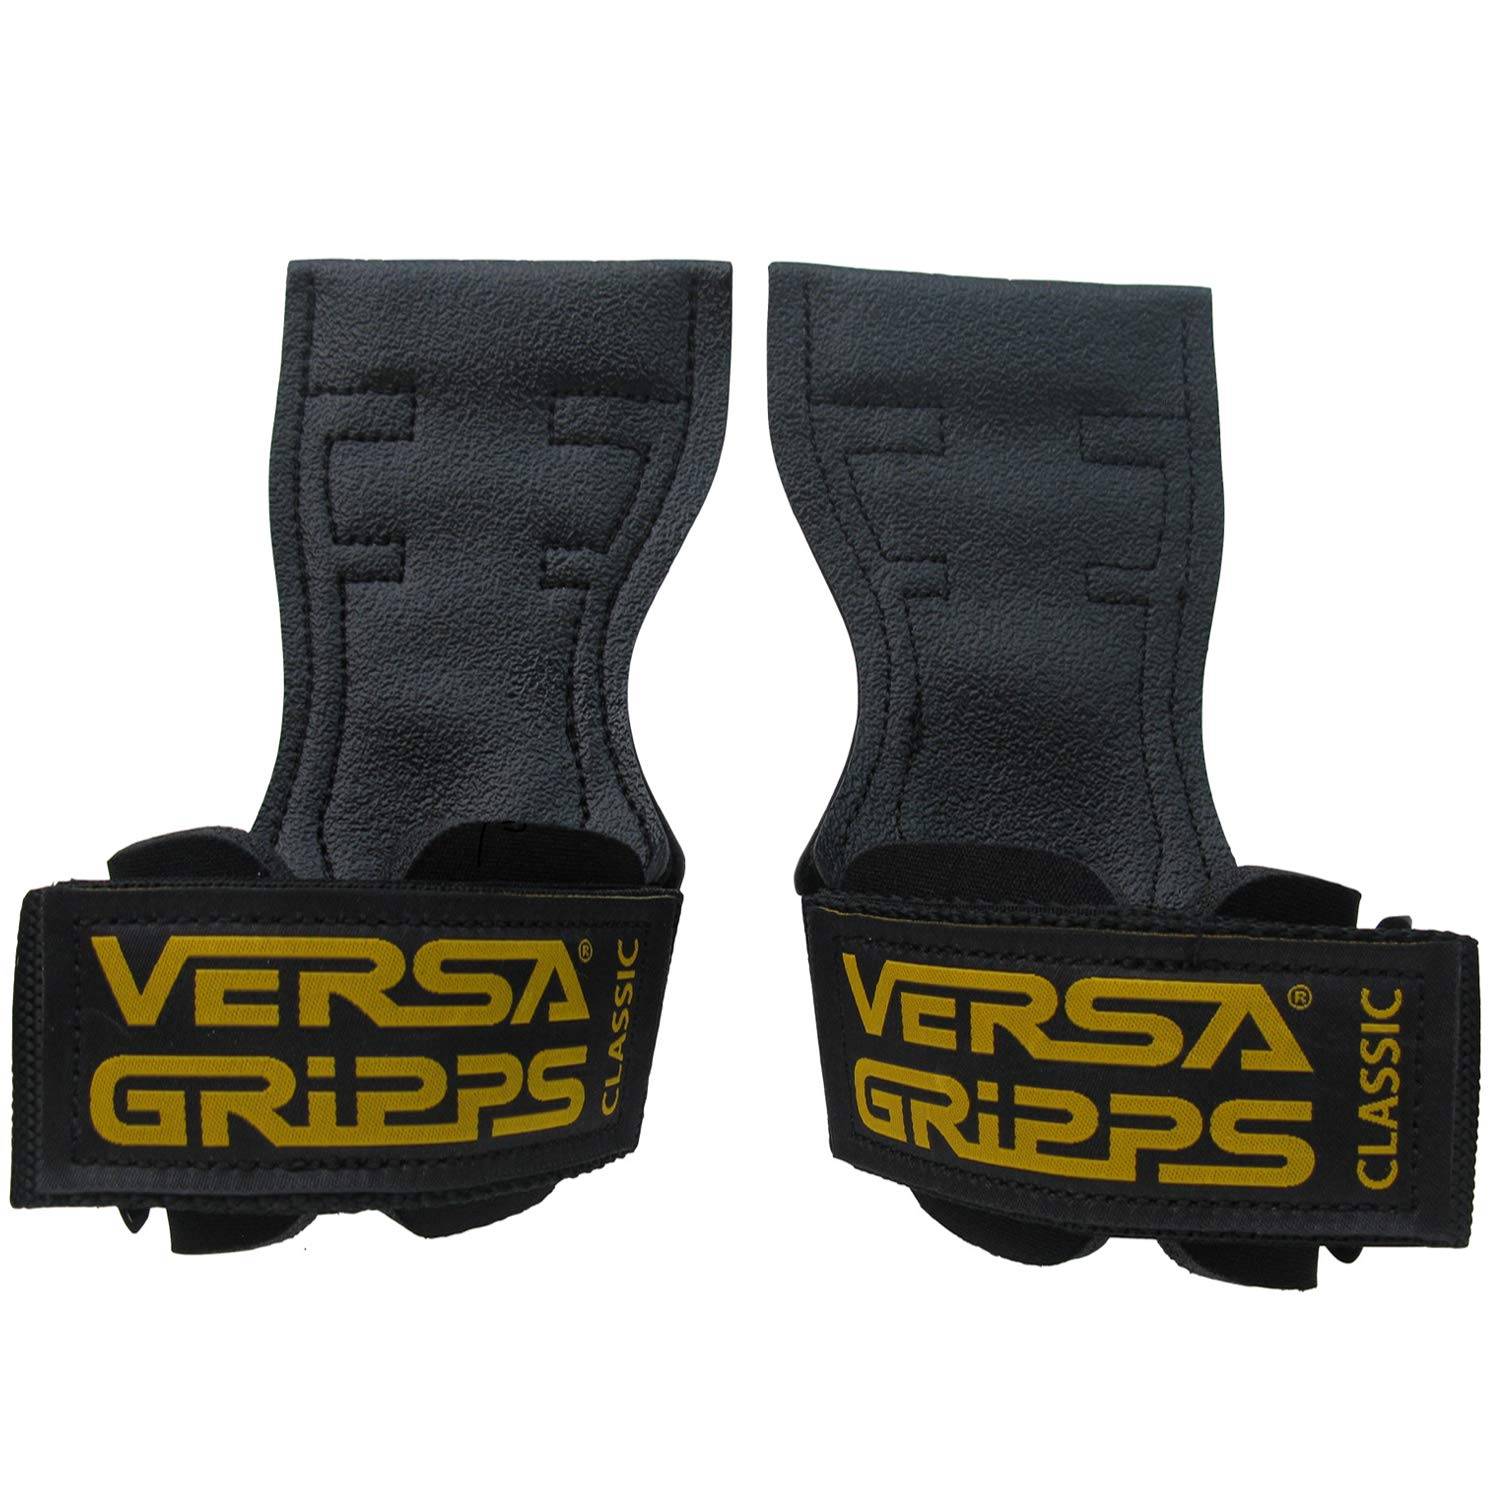 Versa Gripps Classic Authentic. The Best Training Accessory in The World. Made in The USA (CL-Gold Label, X-Small)